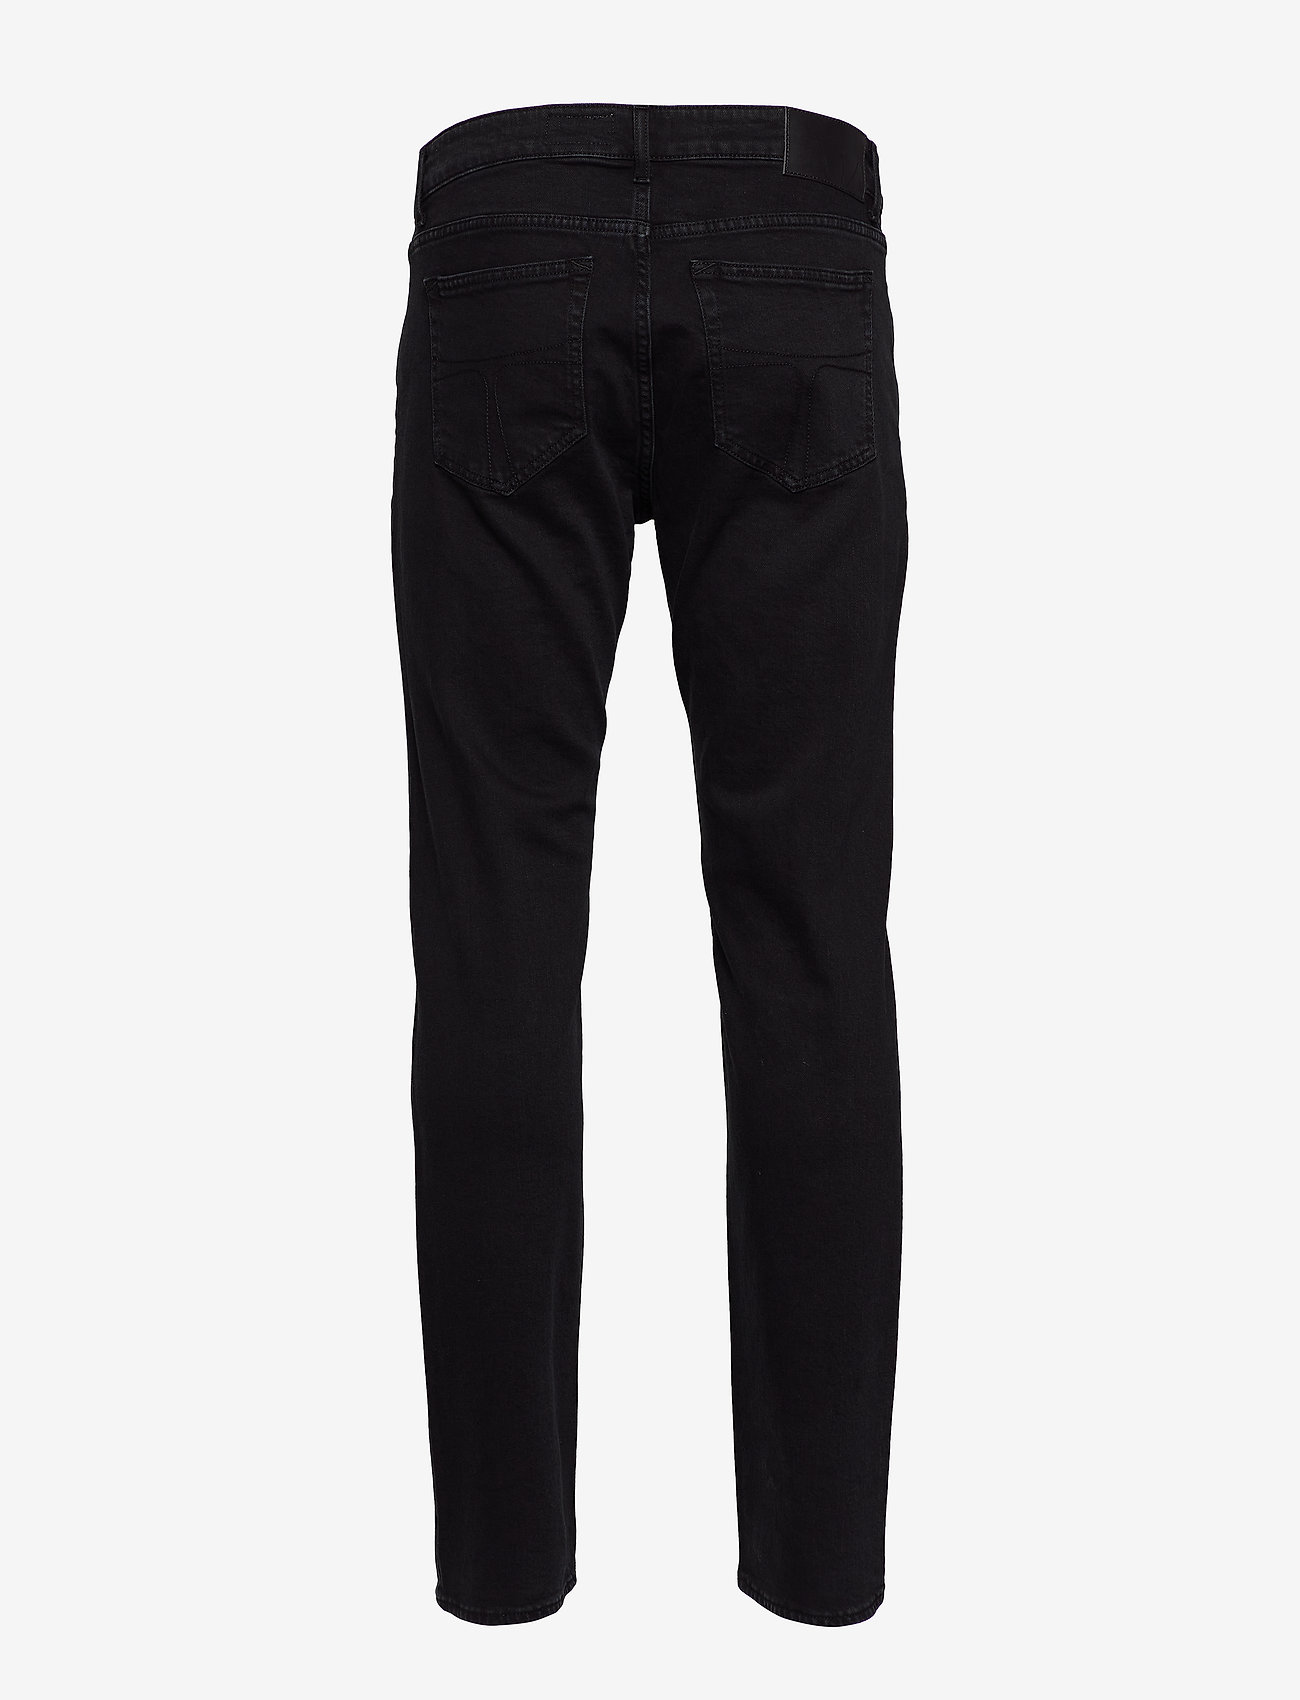 Tiger of Sweden Jeans REX - Jeans BLACK - Menn Klær